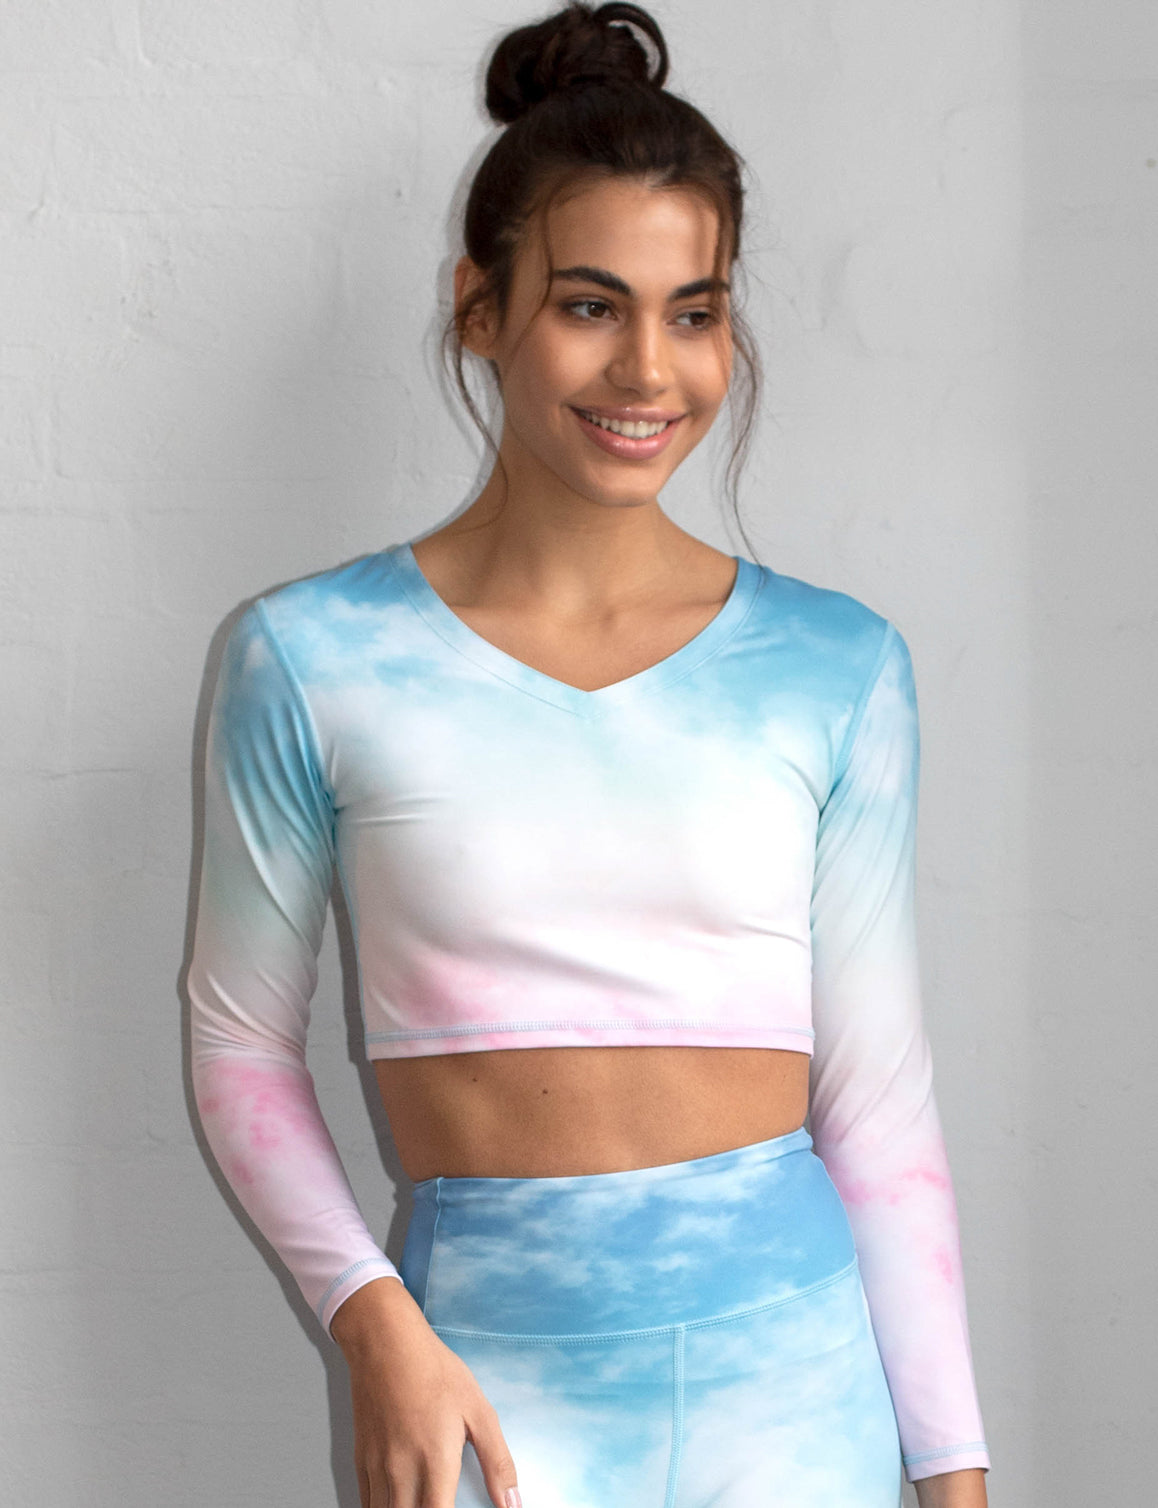 best selling activewear, active wear best-selling activewear leggings,activewear,  skims, cycle shorts, bike shorts, sweatsuit, double panel leggings,nubyen tummy control leggings, loungewear, tie-dye activewear, tie-dye gym leggings, gym leggings, revolve activewear, revolve loungewear, iconic activewear, women's activewear, activewear for women, gym shark, fabletics, under armour, Varley , Nike, slimming leggings, kardashian leggings, lululemon, matching activewear, athlesiure, kylie leggings